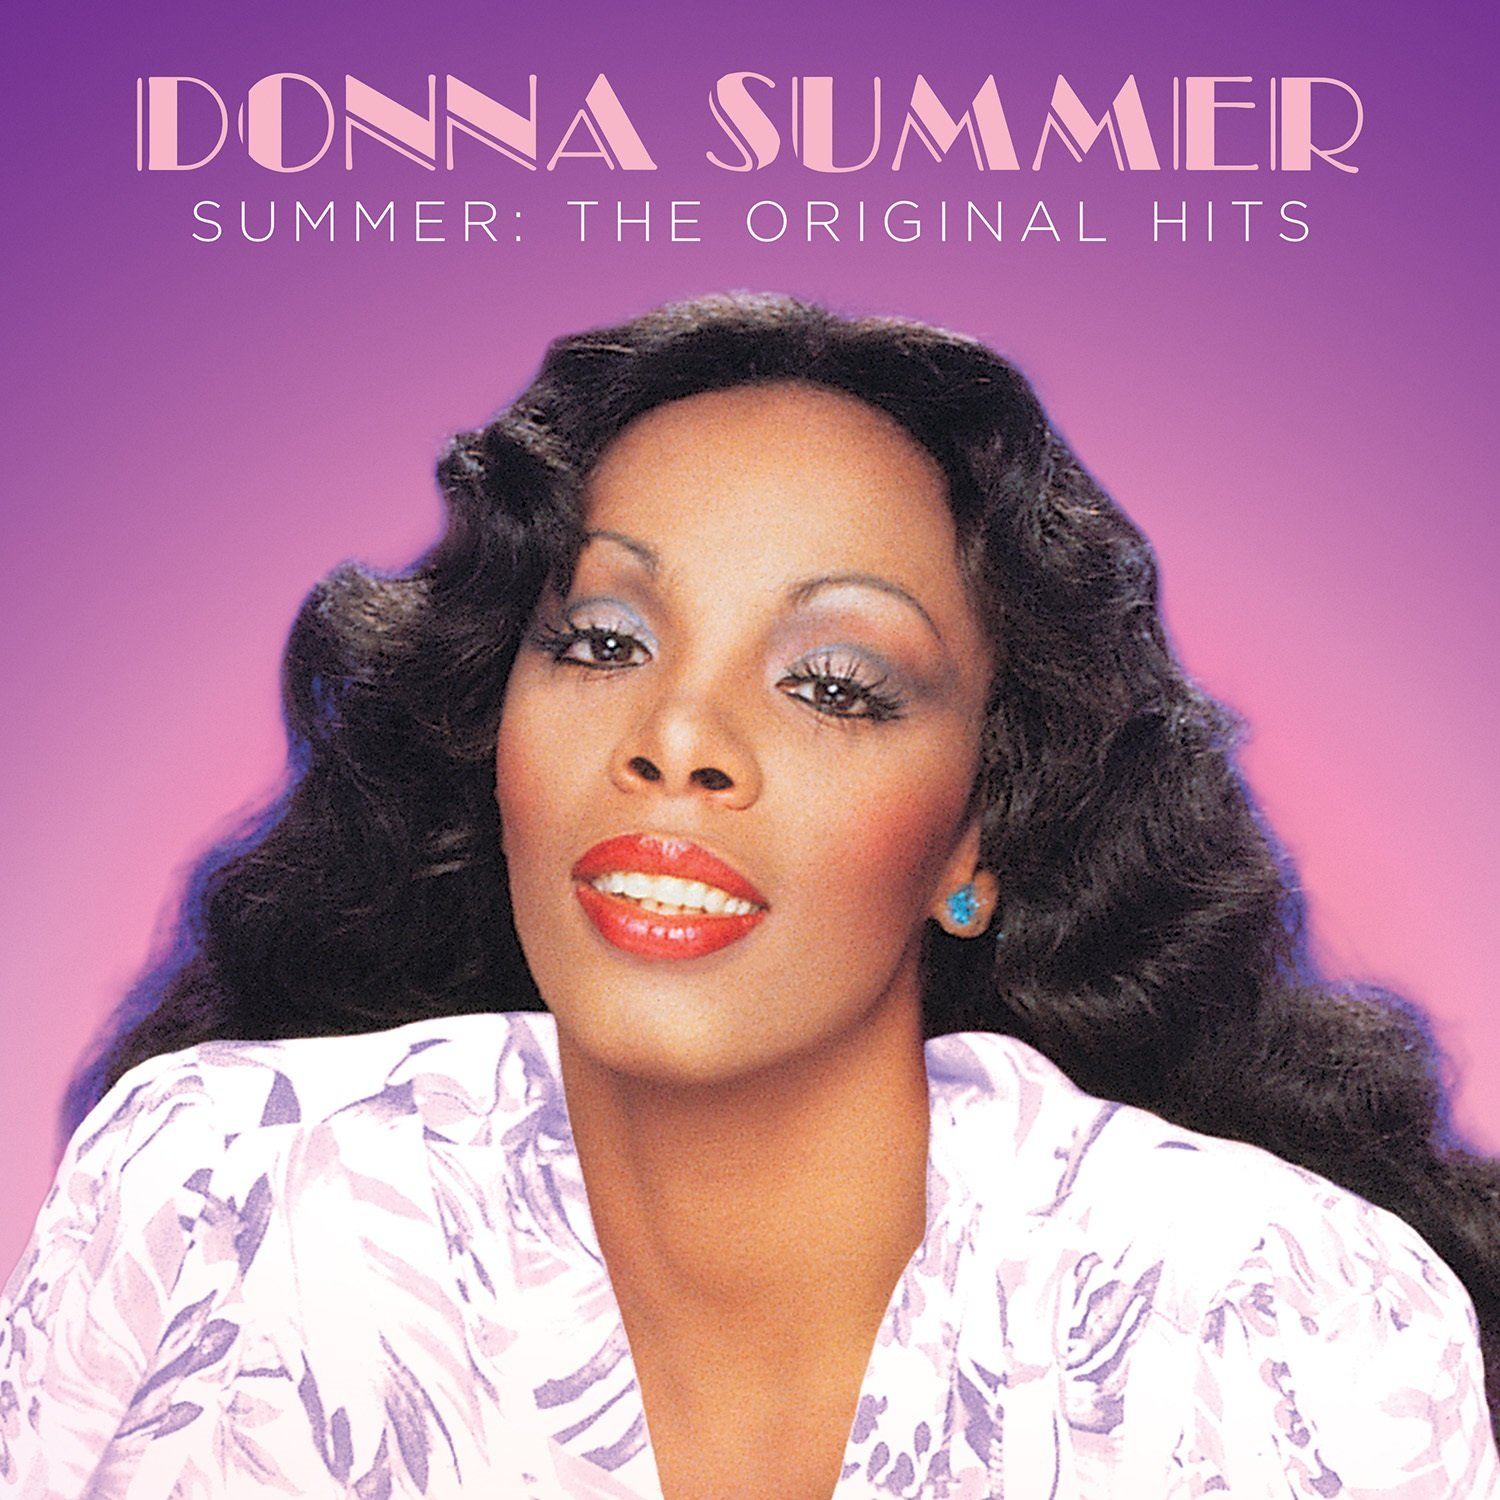 Image result for donna summer: the original hits